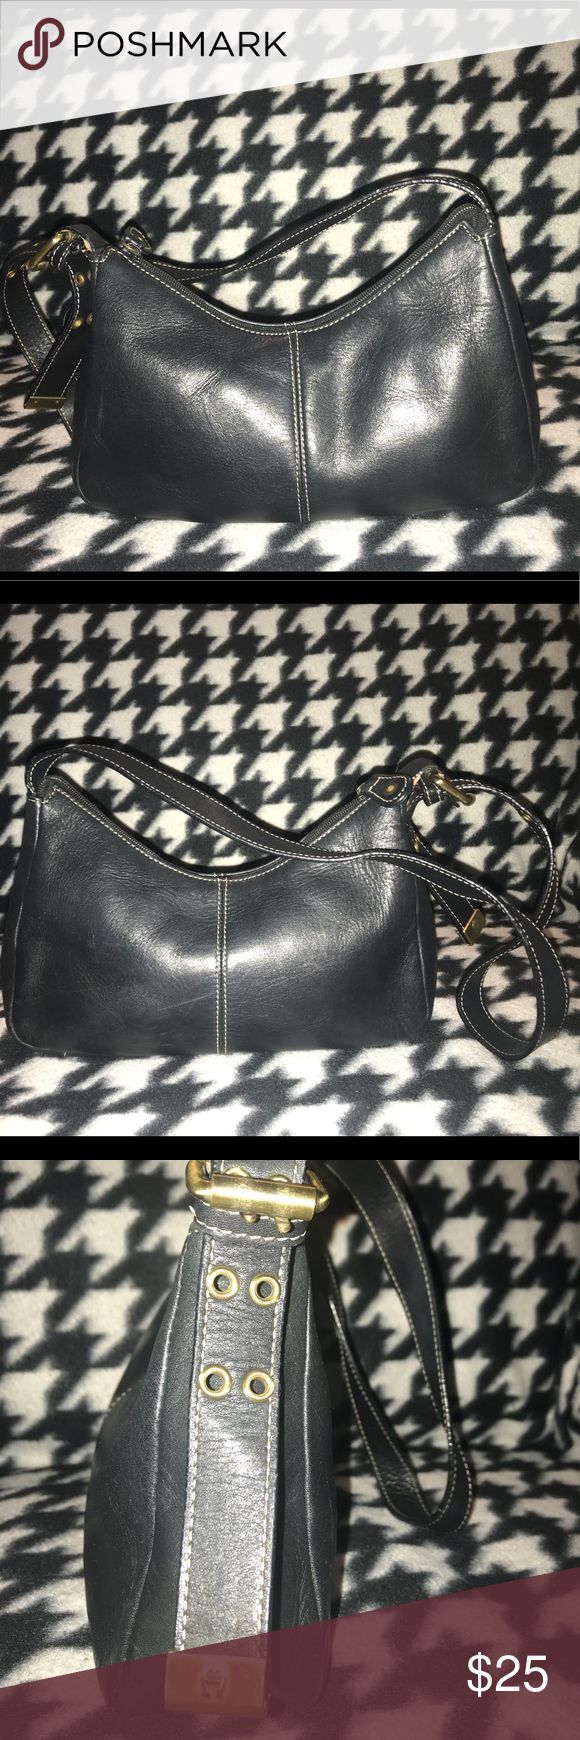 Etienne Aigner Black leather shoulder bag Beautiful, moderately used small black leather shoulder bag with white top stitching and brushed gold hardware. Soft leather, good condition a few scratches on the bottom. Adjustable strap. 2 open interior pockets, 1 zippered pocket. Etienne Aigner Bags Shoulder Bags